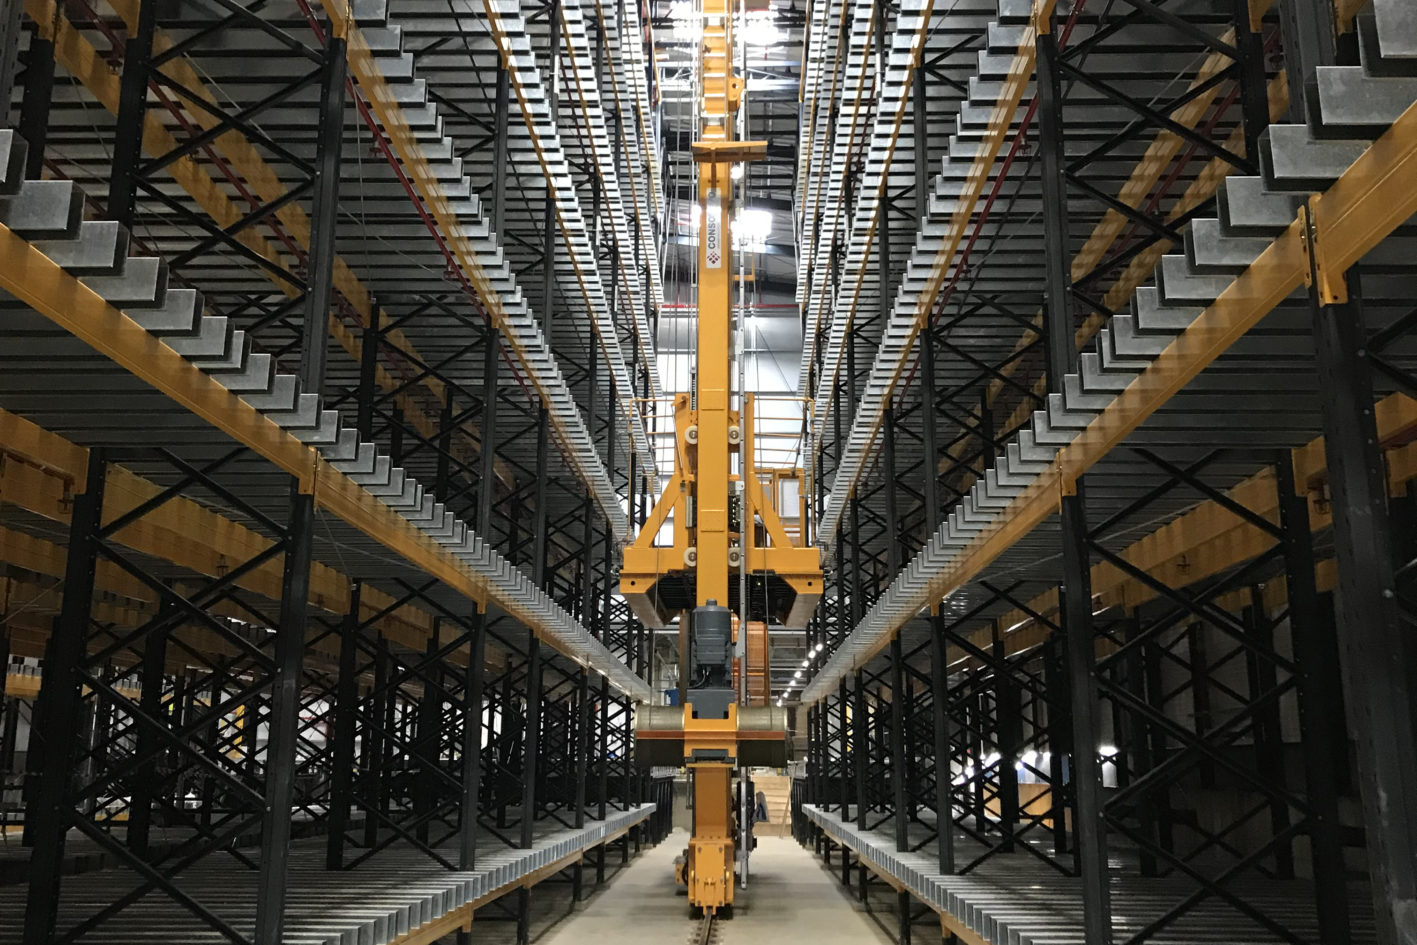 Engineered solutions for corrugated cardboard manufacturing, production and converting machinery, glue kitchen and work in progress vertical storage.